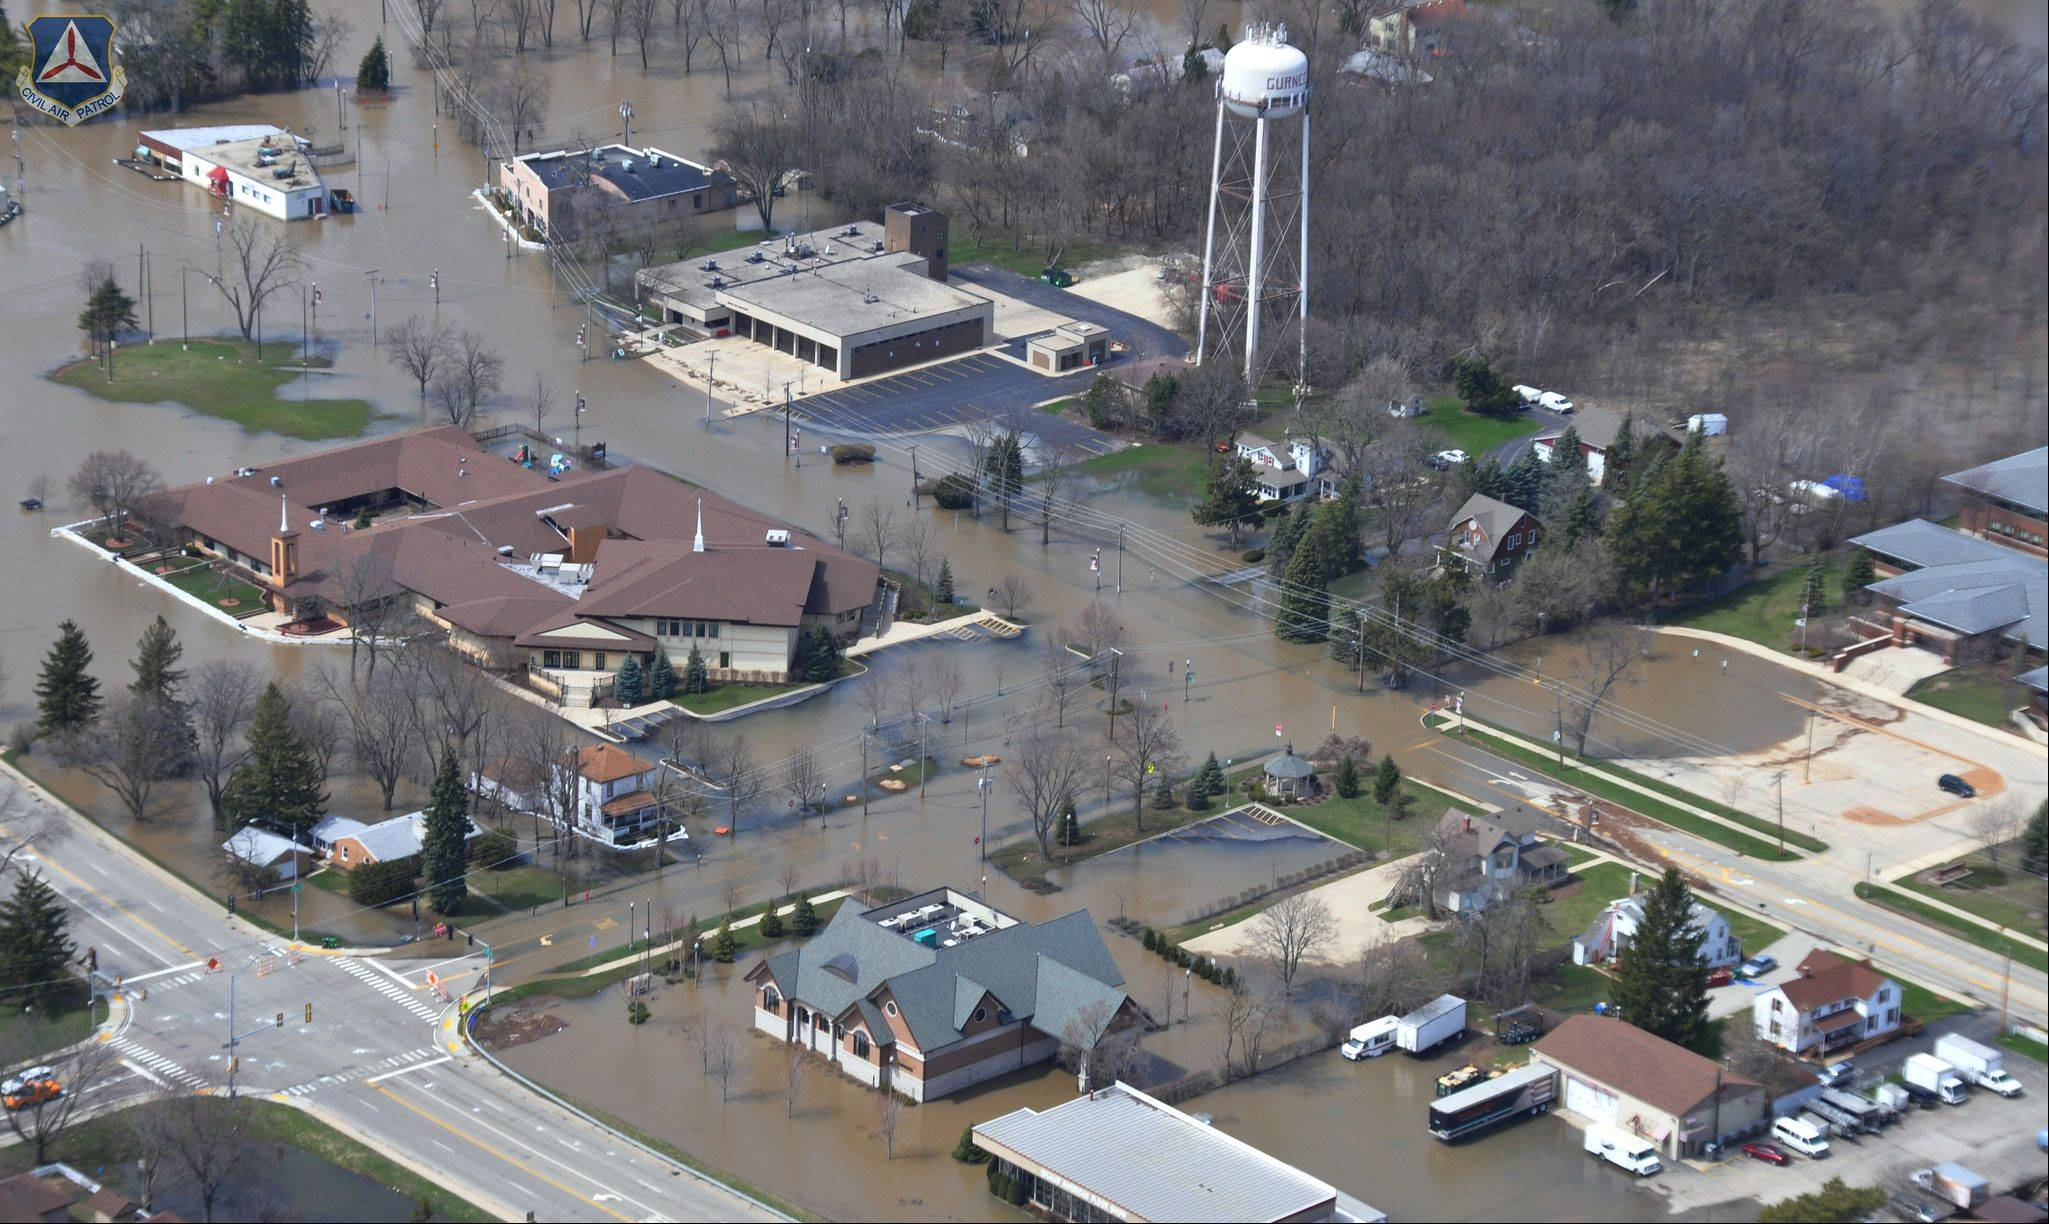 Floodwaters from the Des Plaines River invade Old Grand Avenue in downtown Gurnee.